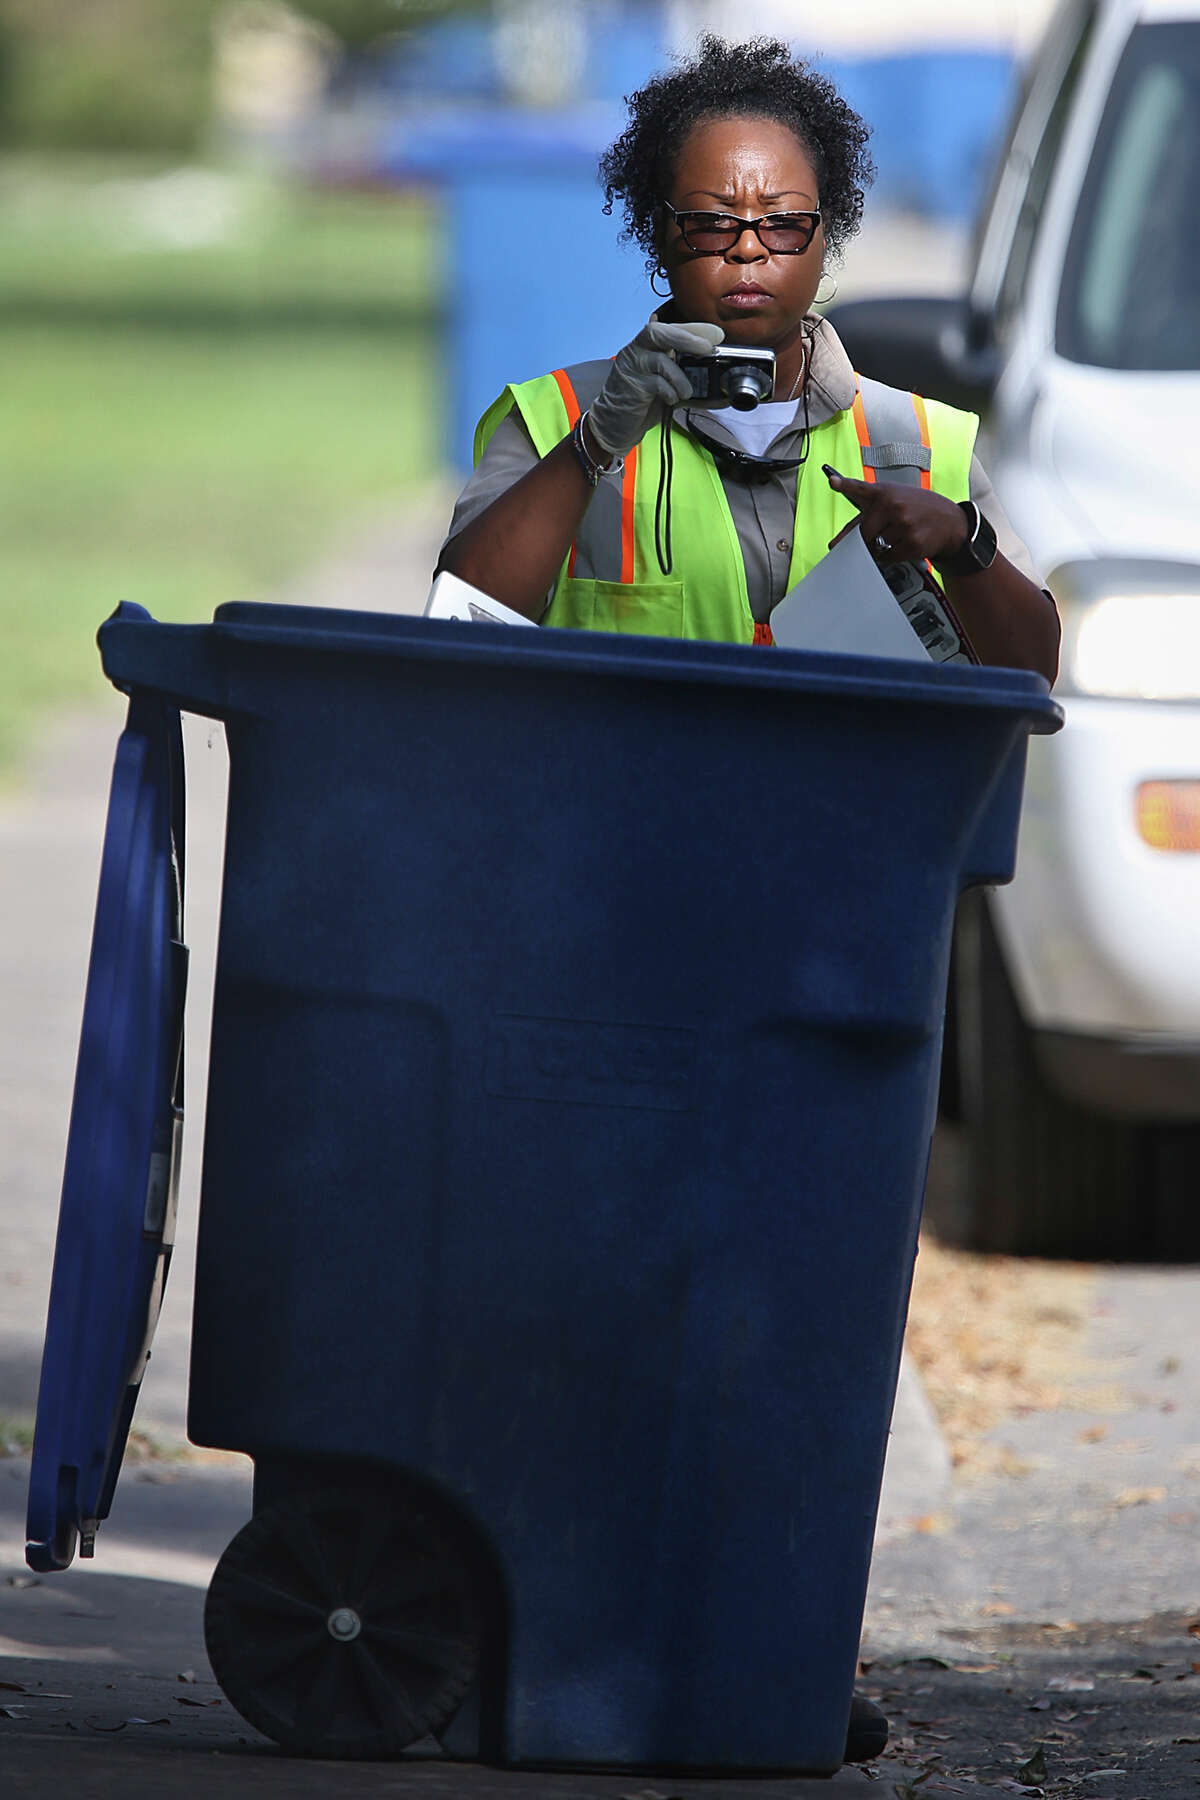 San Antonio Solid Waste Department route inspector Asia Jones-Carr photographs a recycling can with unauthorized items while on her route on West Mandalay Drive and West Thorain Boulevard near Blanco Road, Monday, July 20, 2015. Household garbage and air conditioning filters are among items not allowed in the can and in this case services was refused.